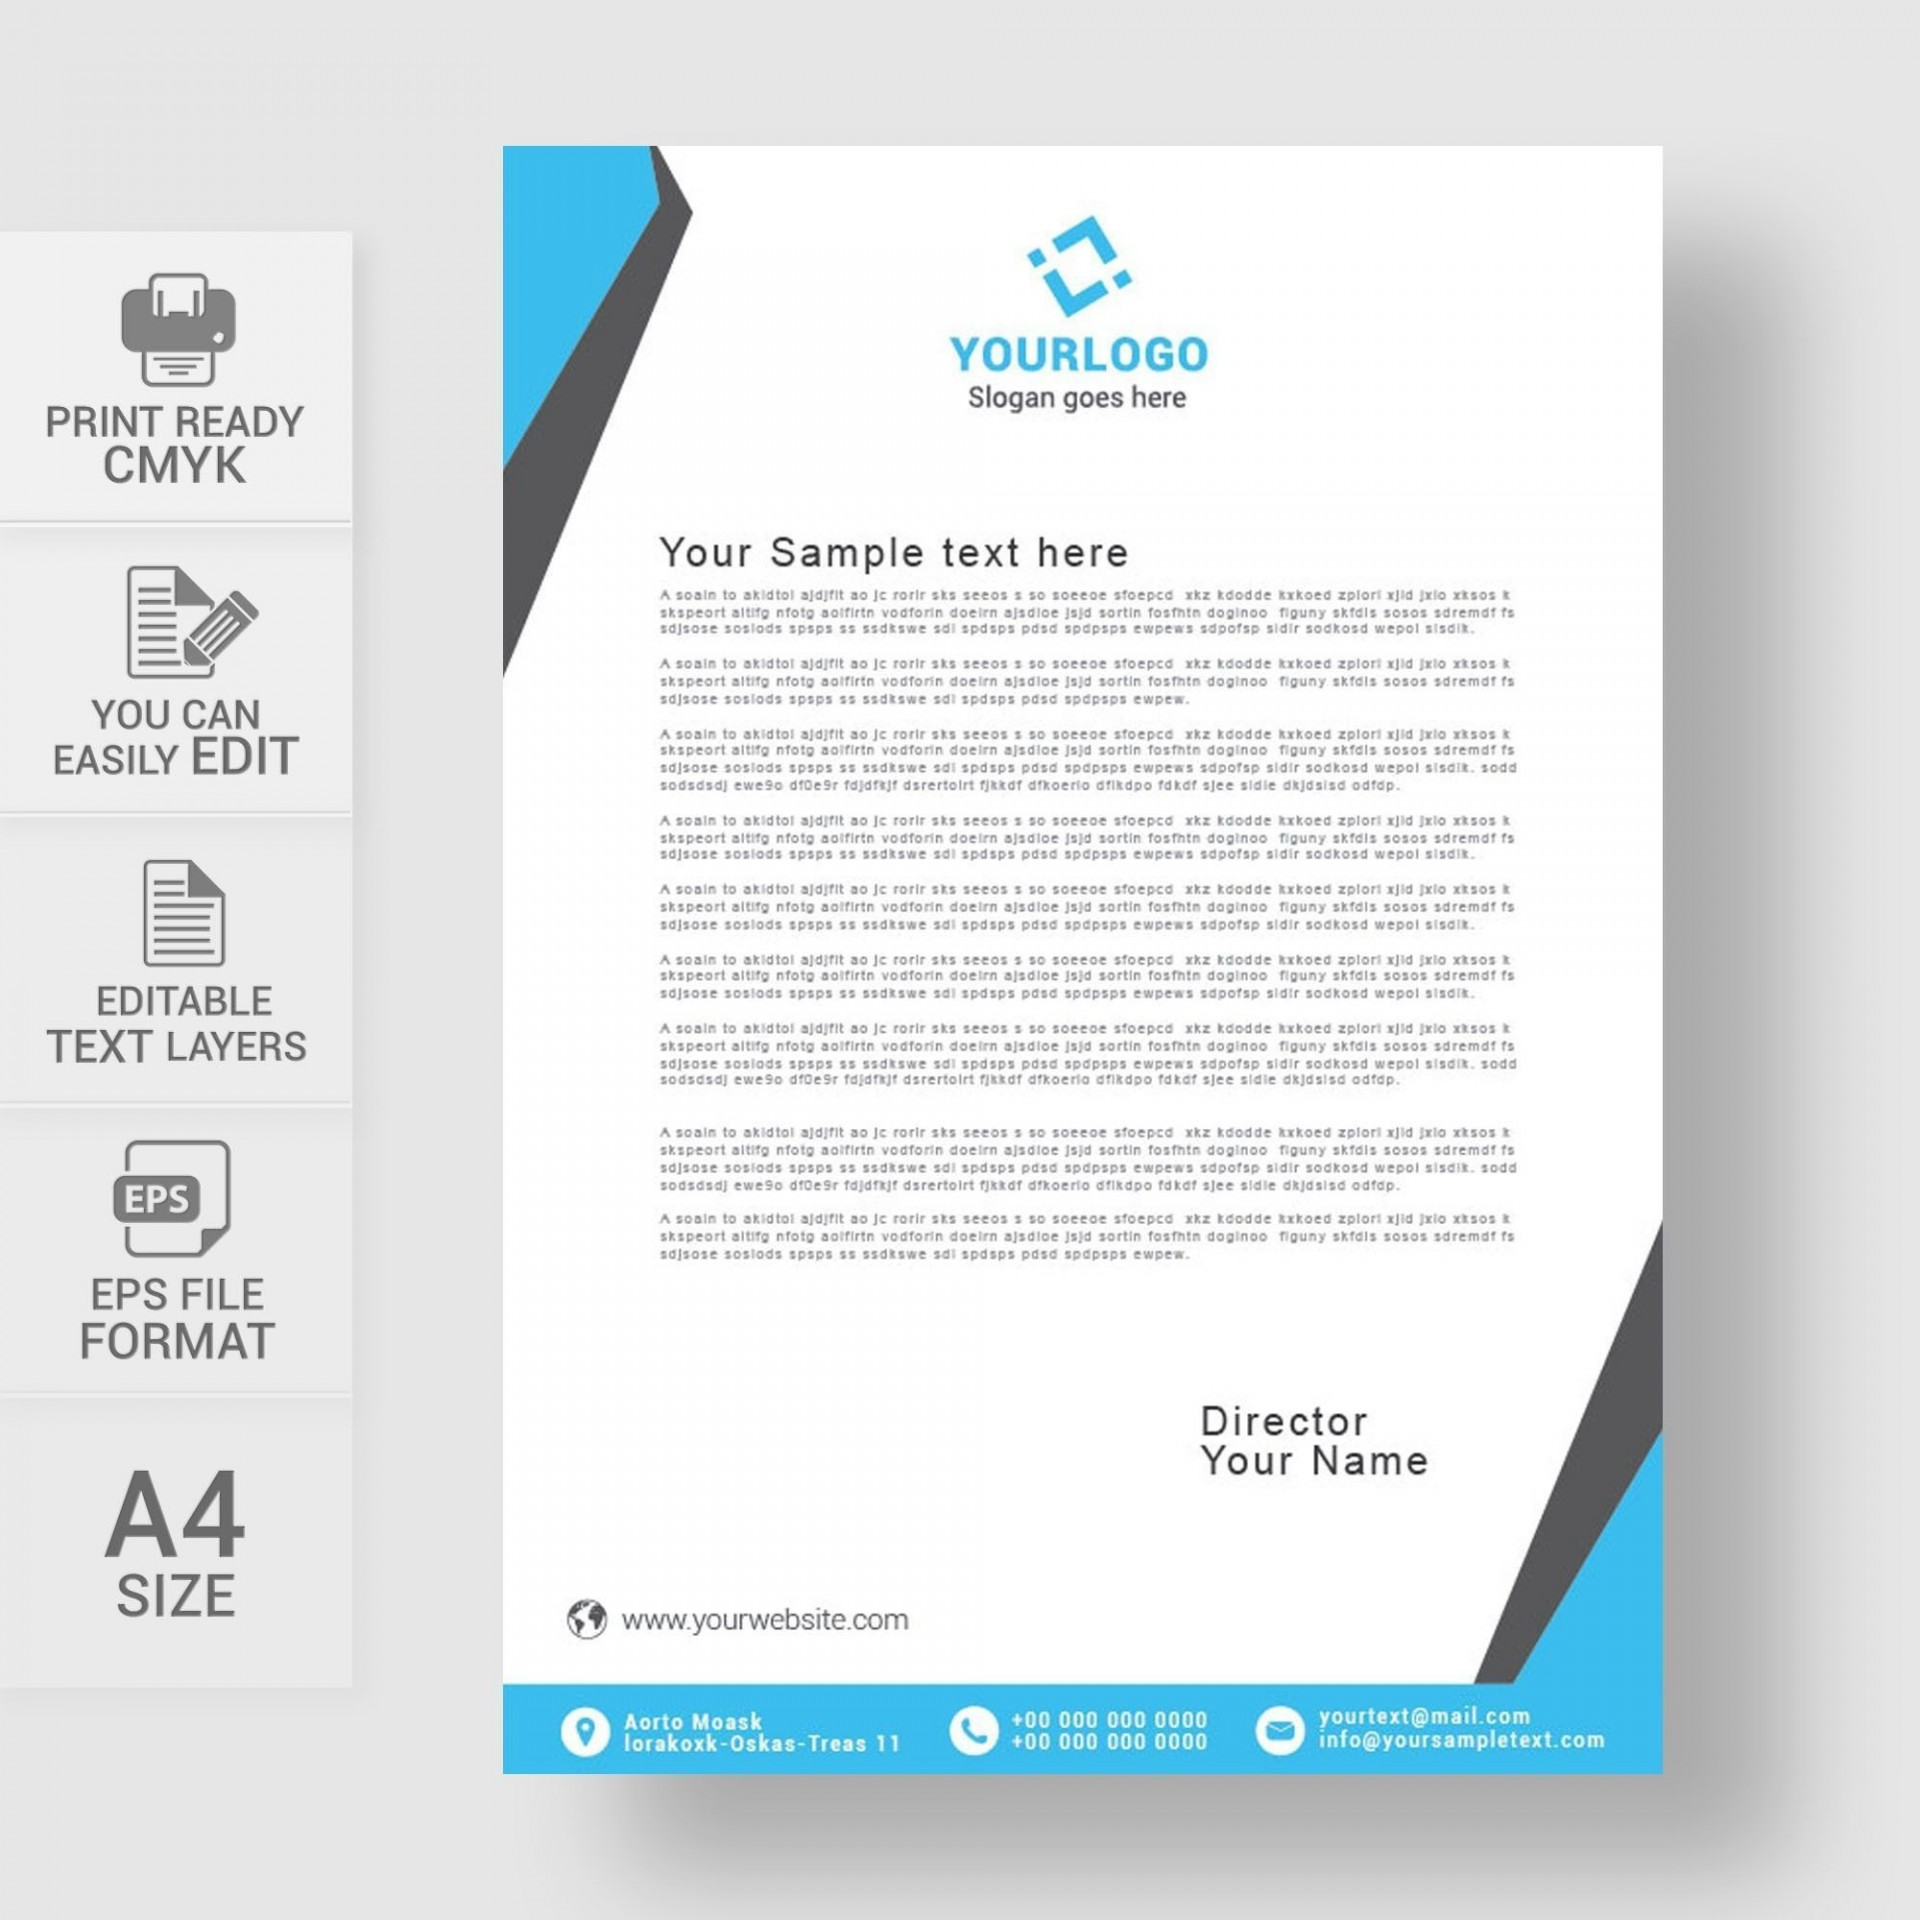 009 Unbelievable Letterhead Format In Word 2007 Free Download Inspiration  Company Template1920